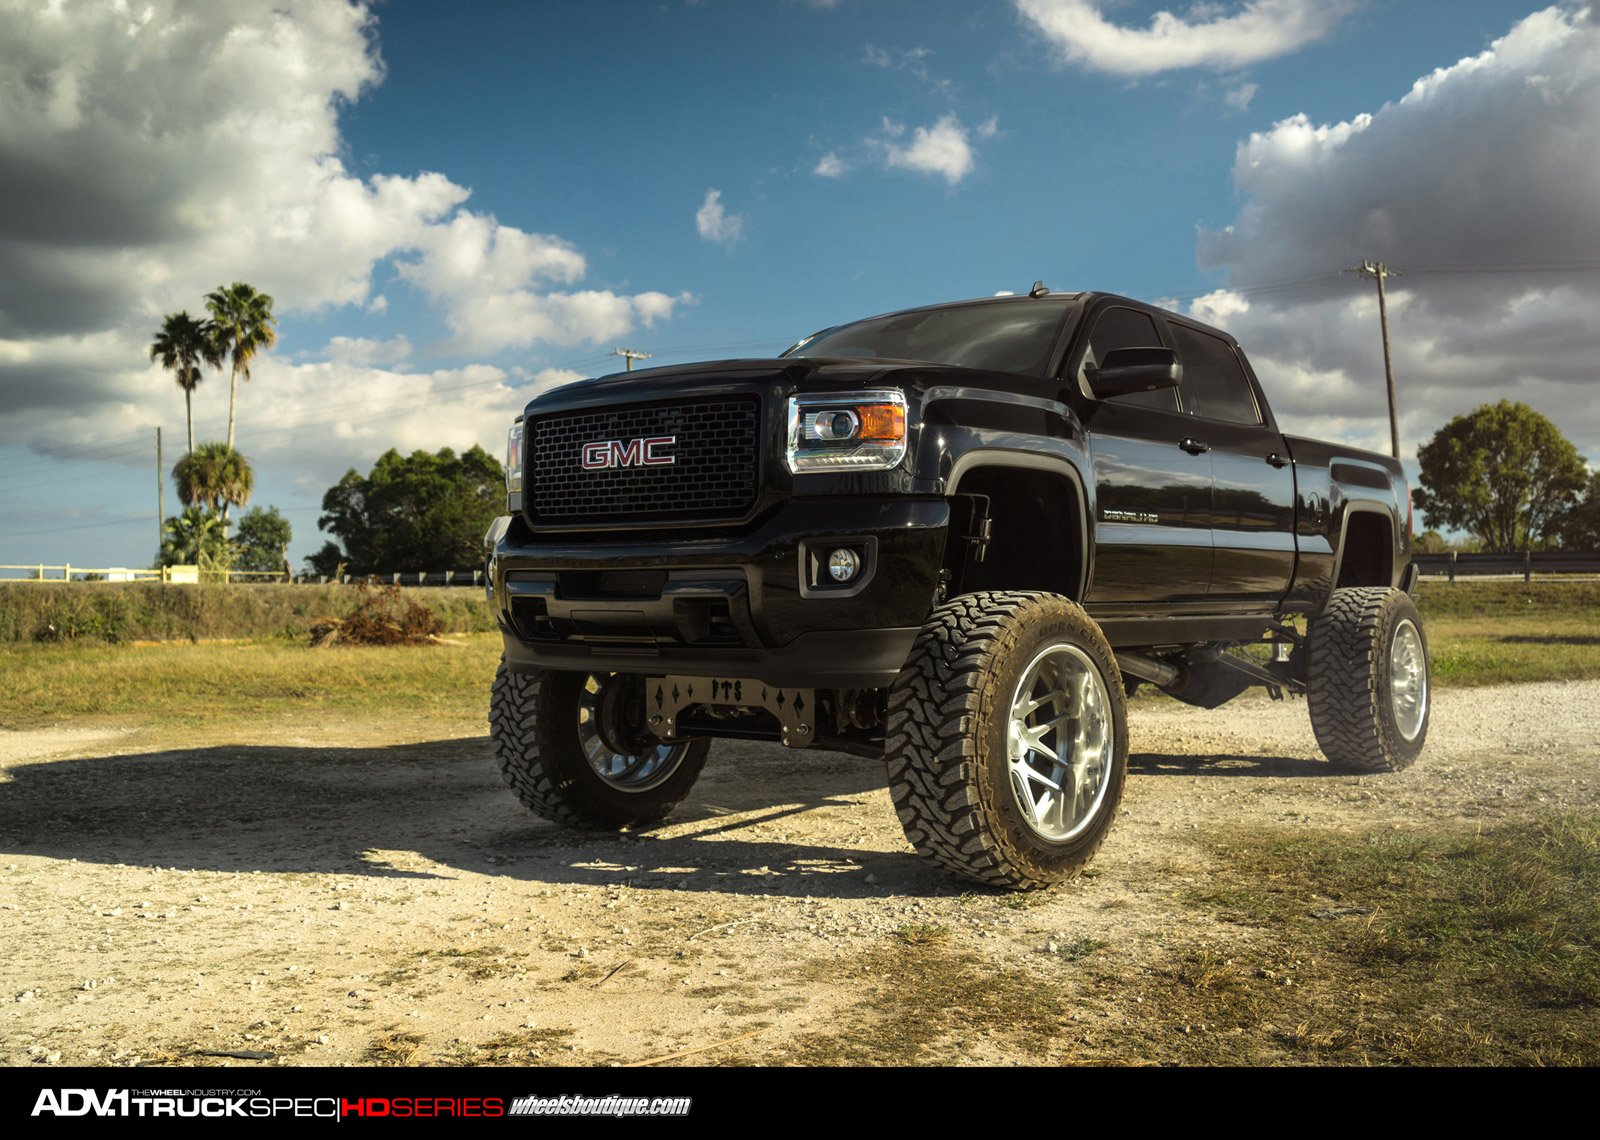 2014 ADV1 Wheels GMC SIERRA DENALI Truck Suv Cars Wallpaper